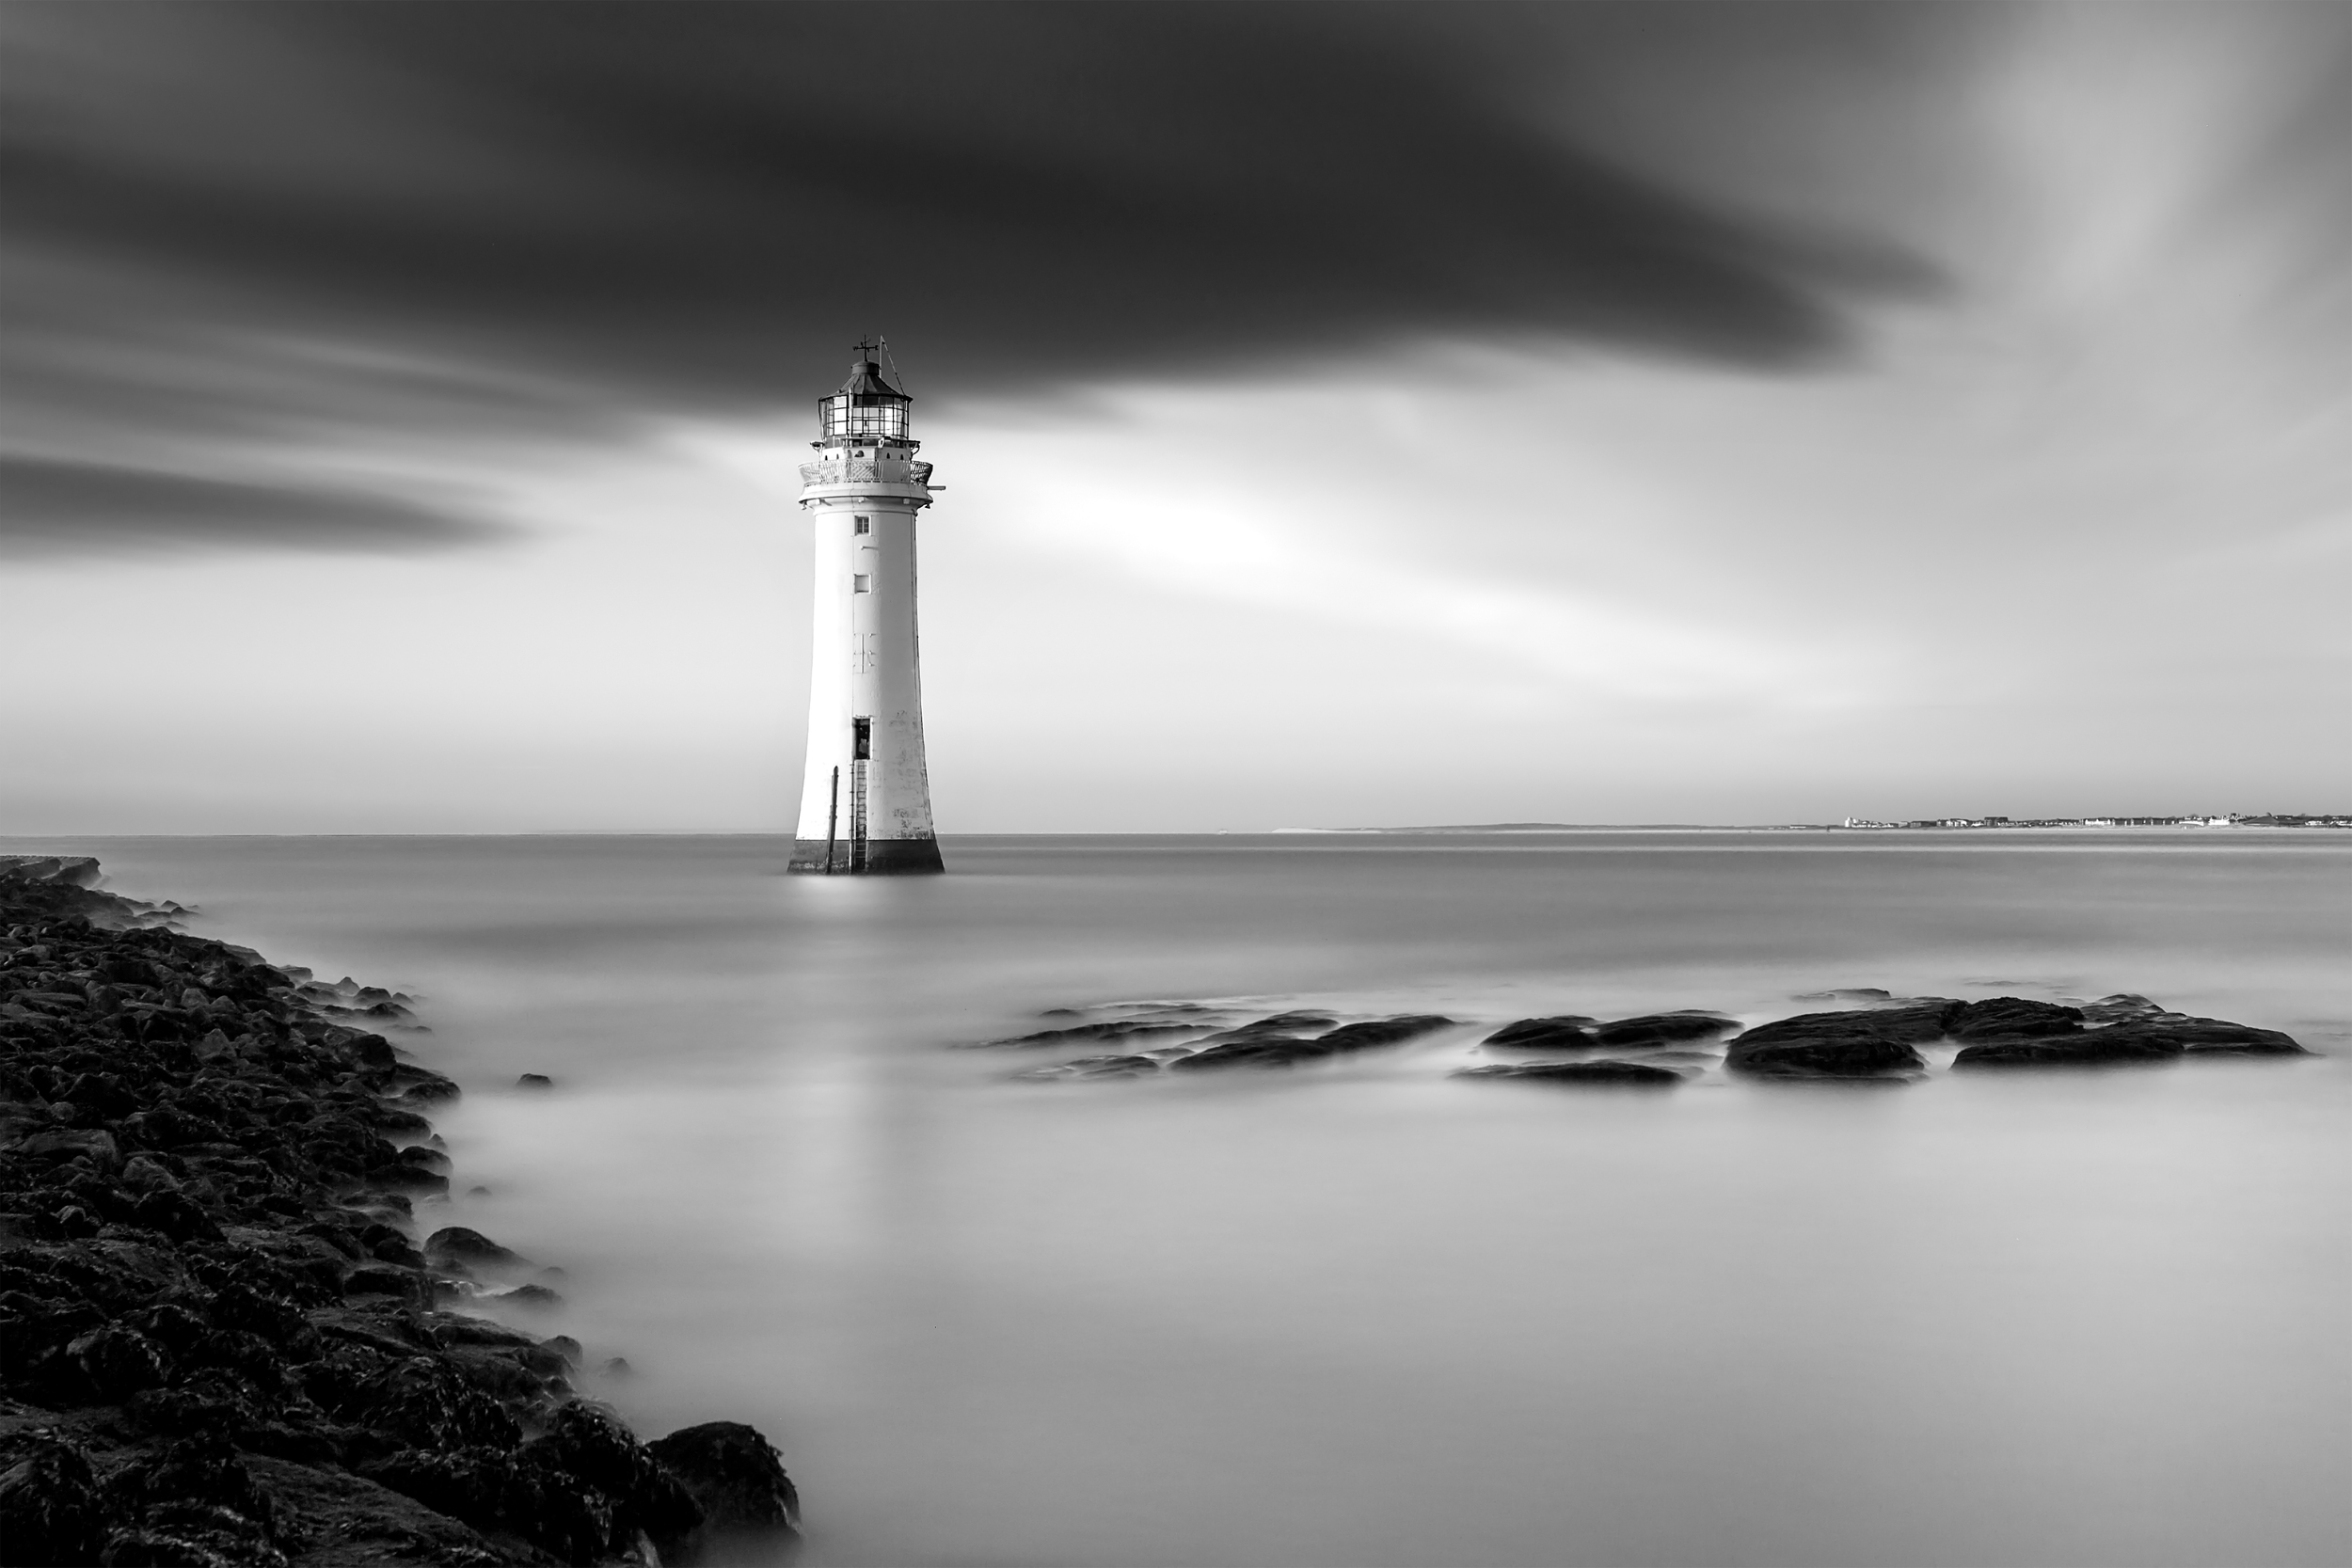 still waters at perch rock formatt hitech.jpg